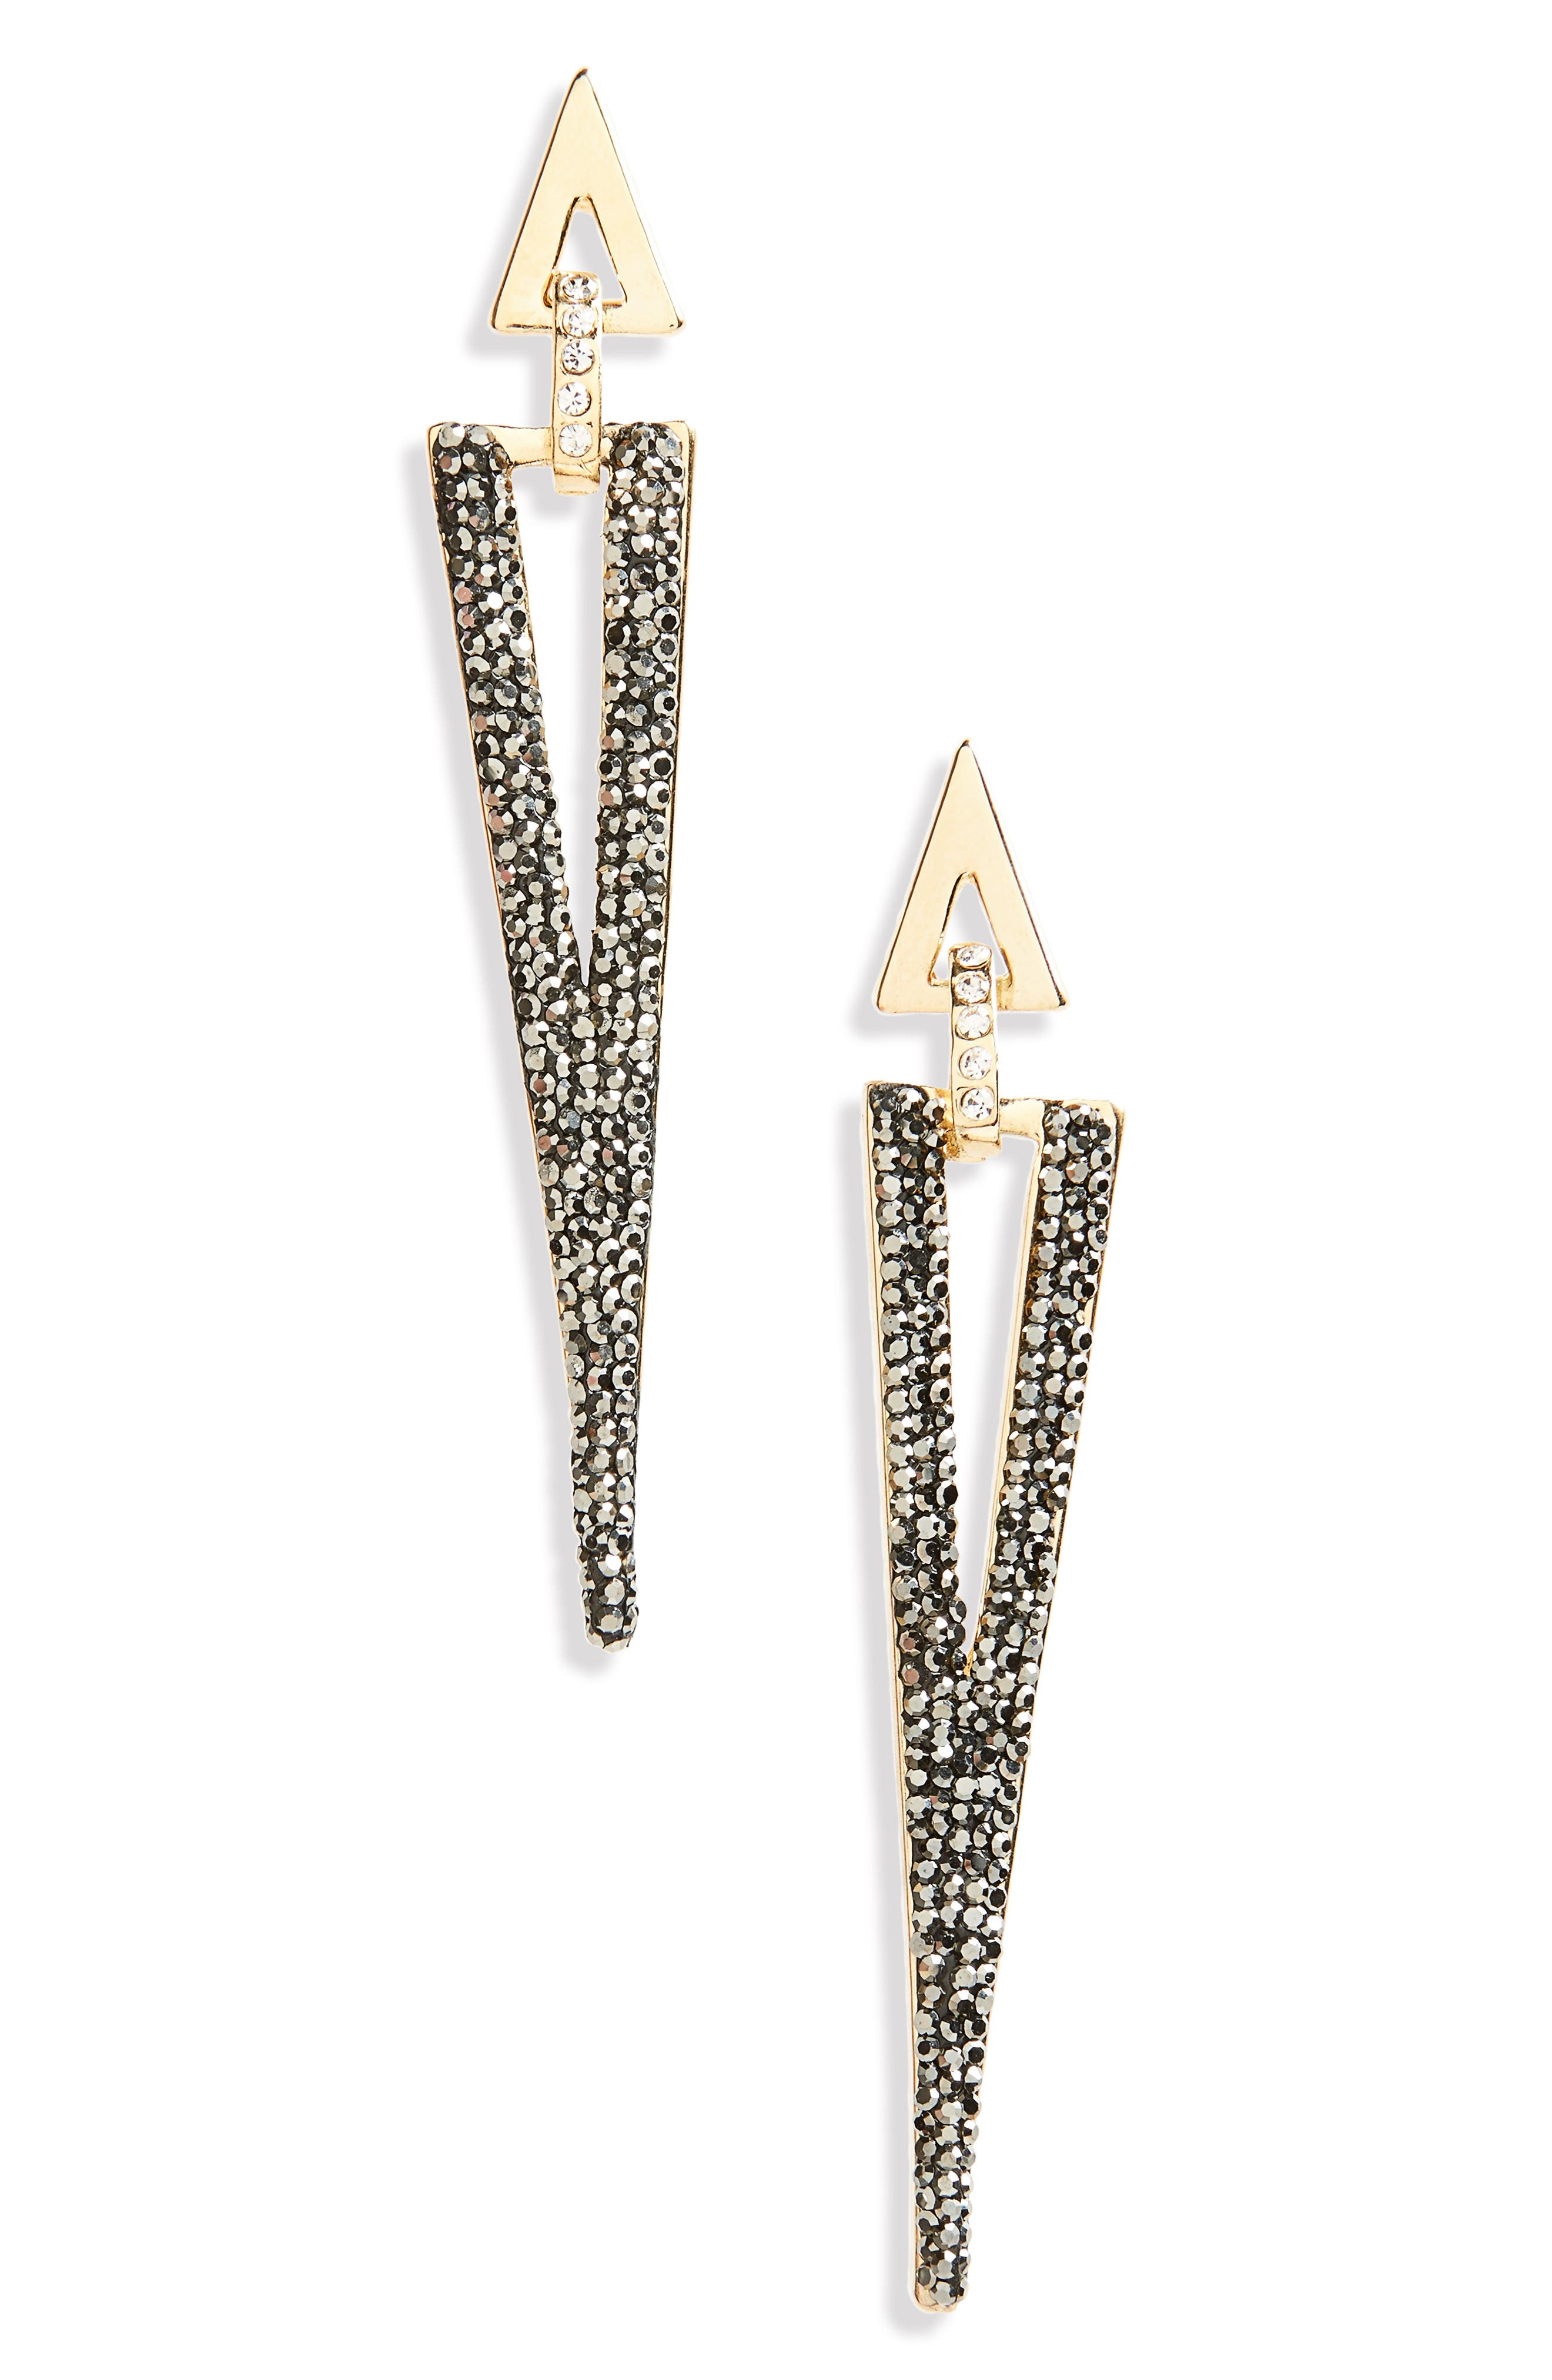 Linear Luxe Triangle Earrings,                         Main,                         color, Gray